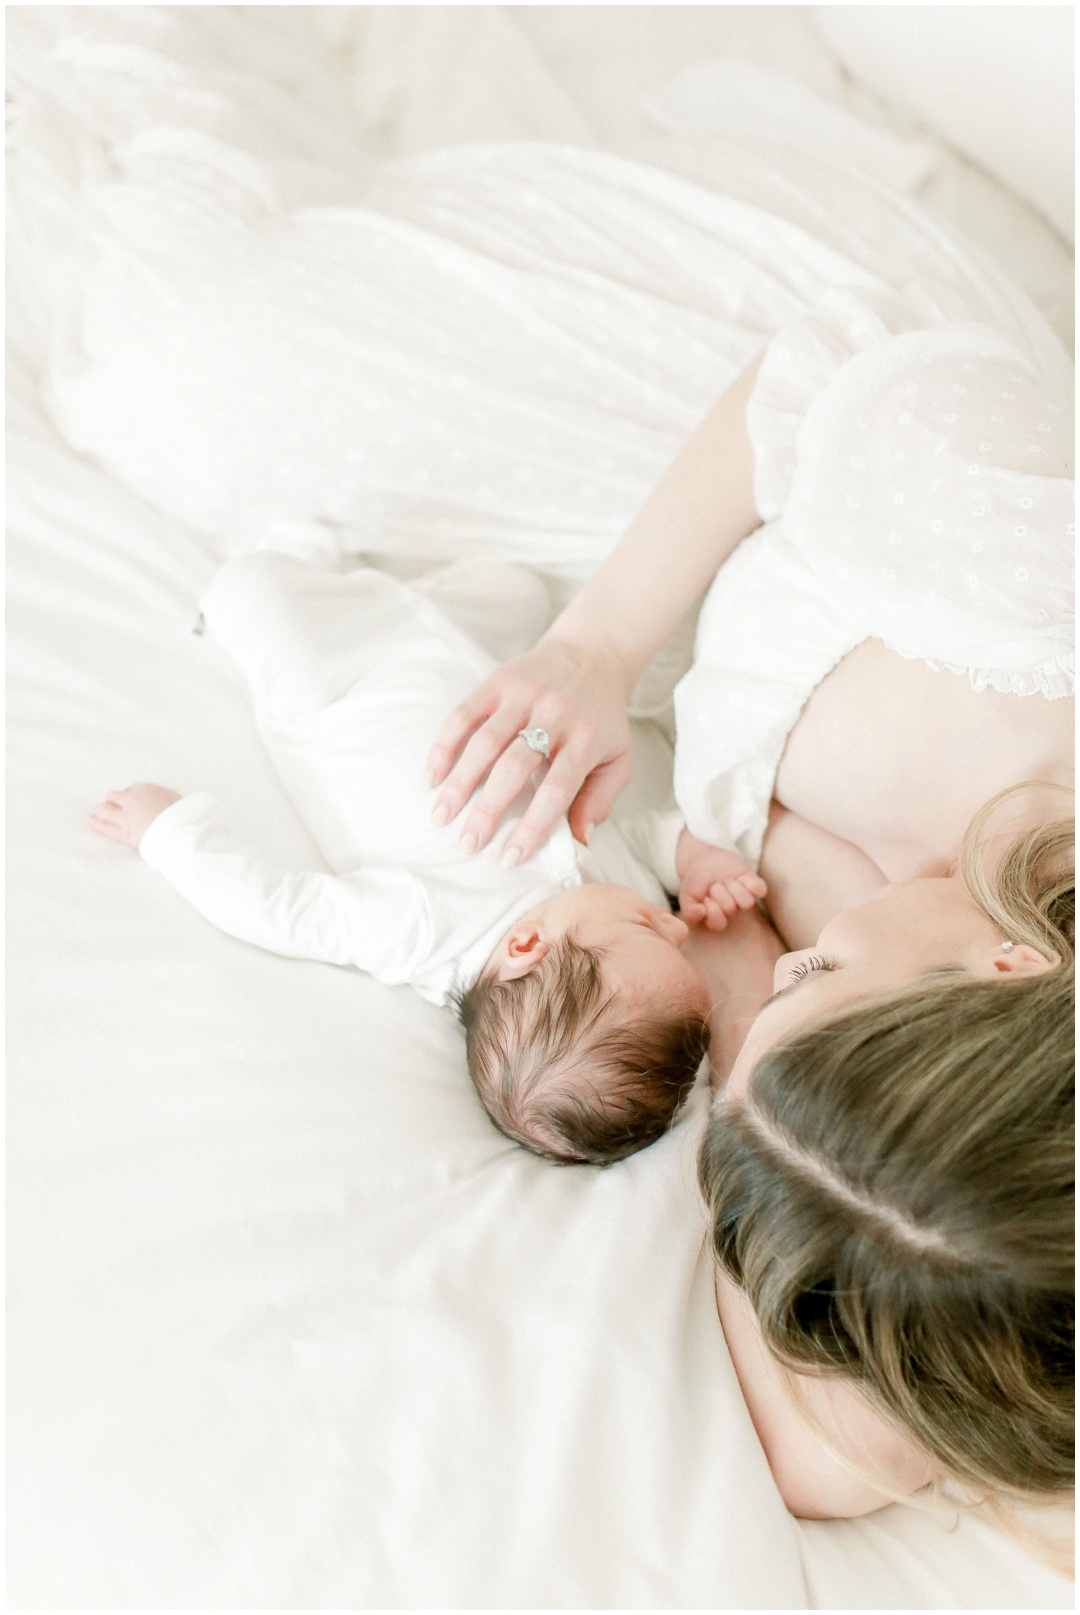 Newport_Beach_Newborn_Light_Airy_Natural_Photographer_Newport_Beach_Photographer_Orange_County_Family_Photographer_Cori_Kleckner_Photography_Huntington_Beach_Photographer_Family_OC_Maternity_Breanna_Santillo__3674.jpg